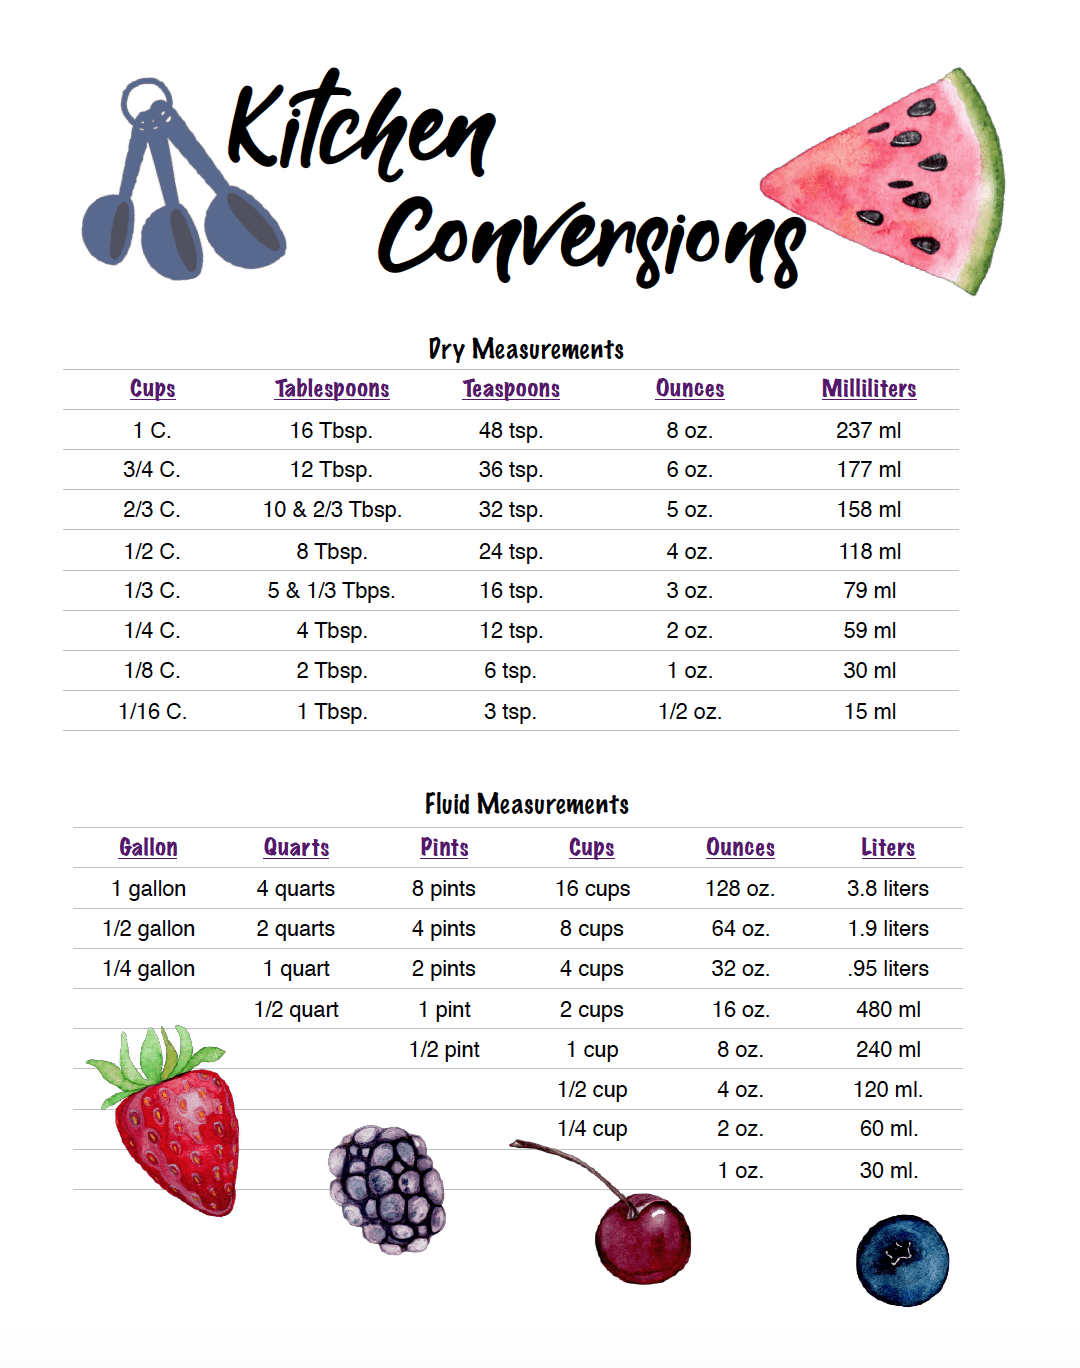 Free Printable Kitchen Conversion Chart. Easily convert from teaspoons to tablespoons to cups and more. Tape inside your cupboard for easy access. #free #printable #freeprintable #conversion #kitchenconversion #measurement